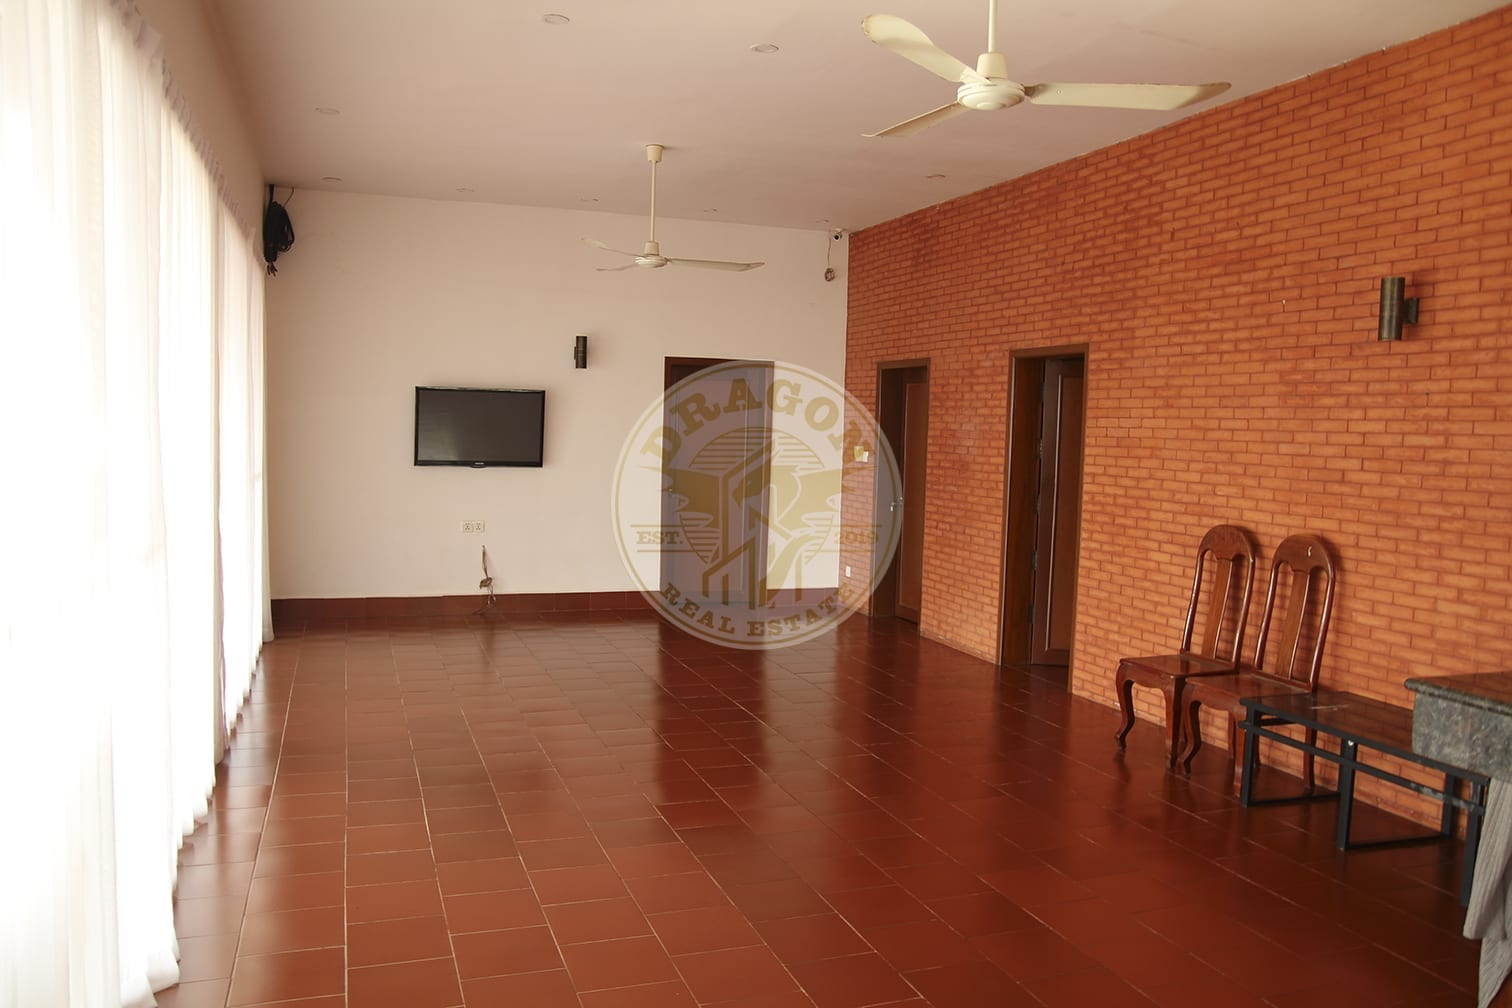 Villa 350m2 for Rent. Rooms for Rent in Sihanoukville Cambodia